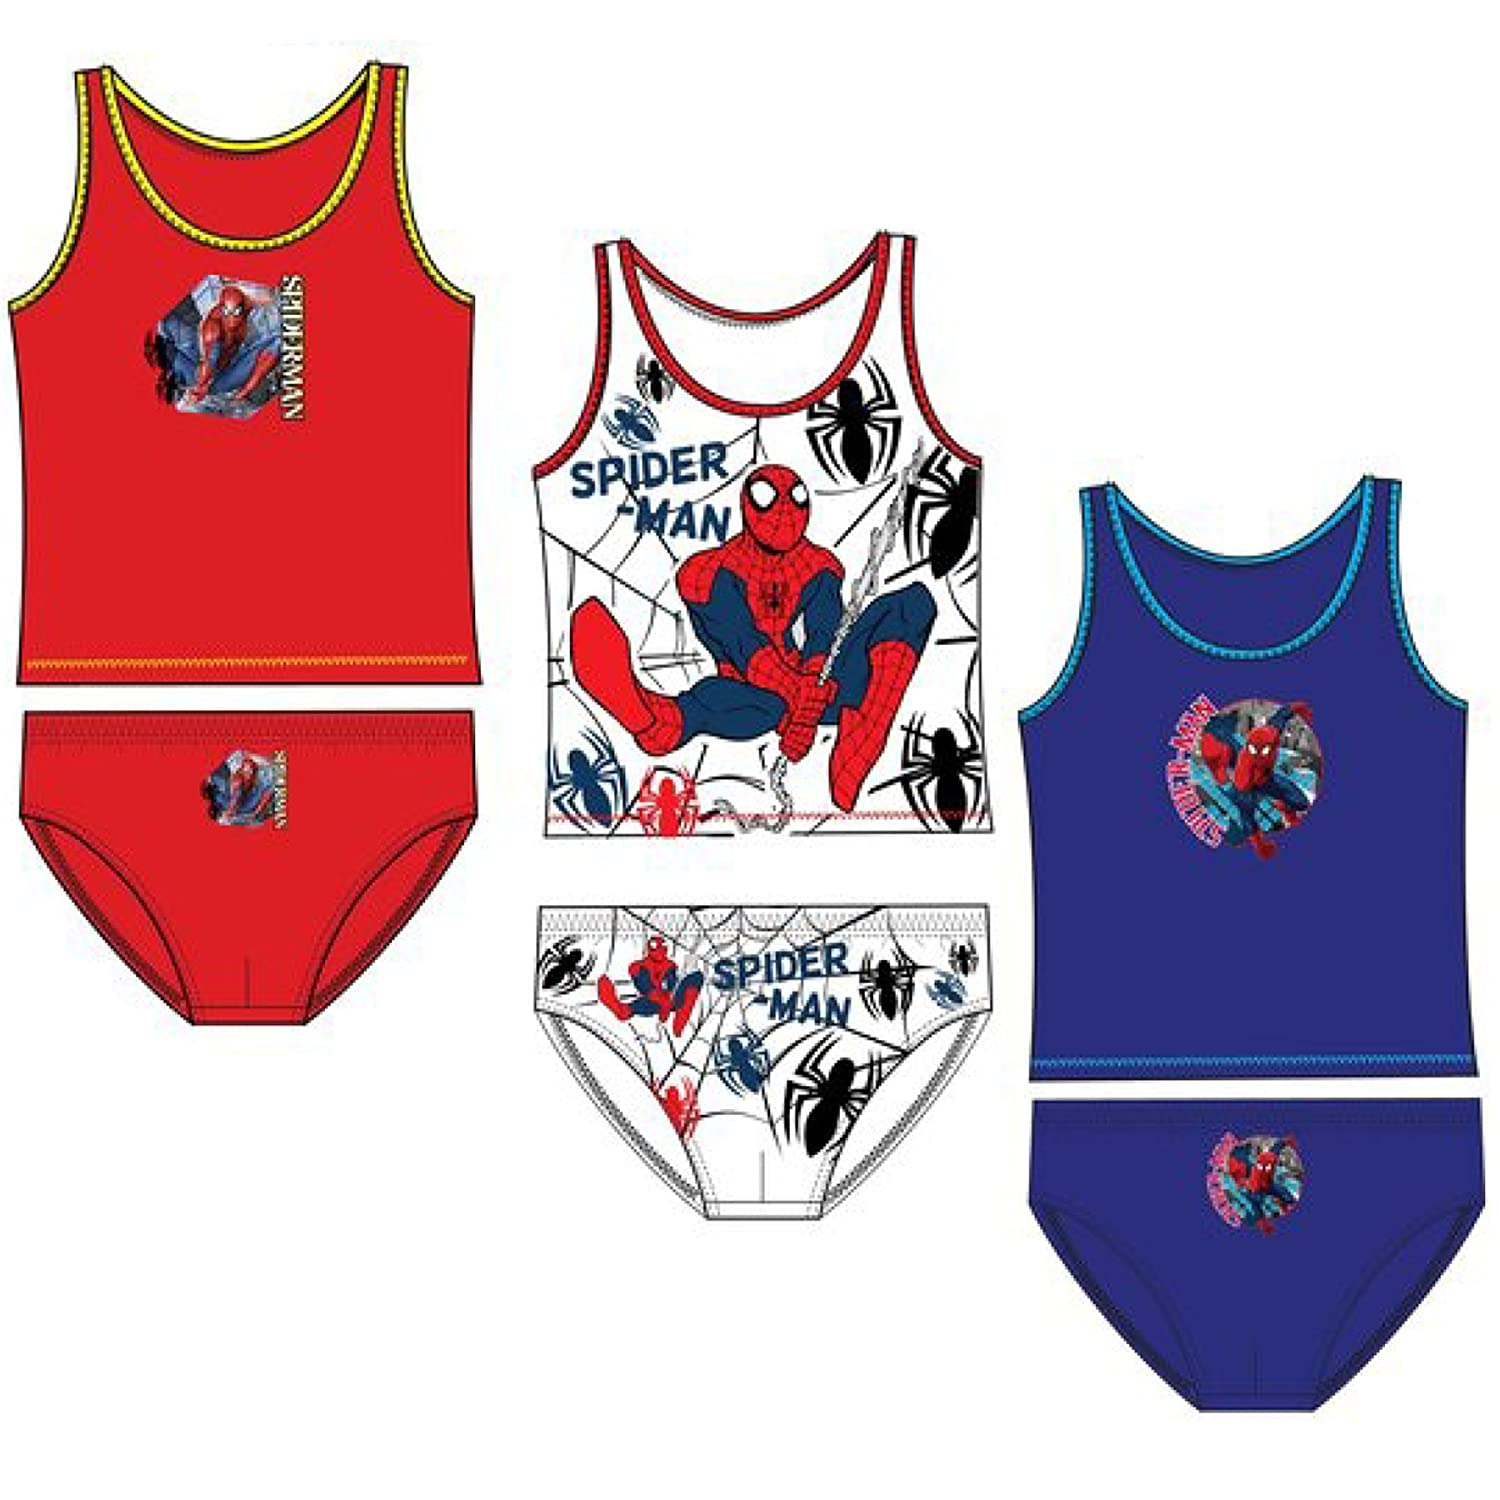 Official Spiderman Boys Underwear Set Bulk 6 PCS Pack 3 Briefs + 3 Vest 2-8 Yrs